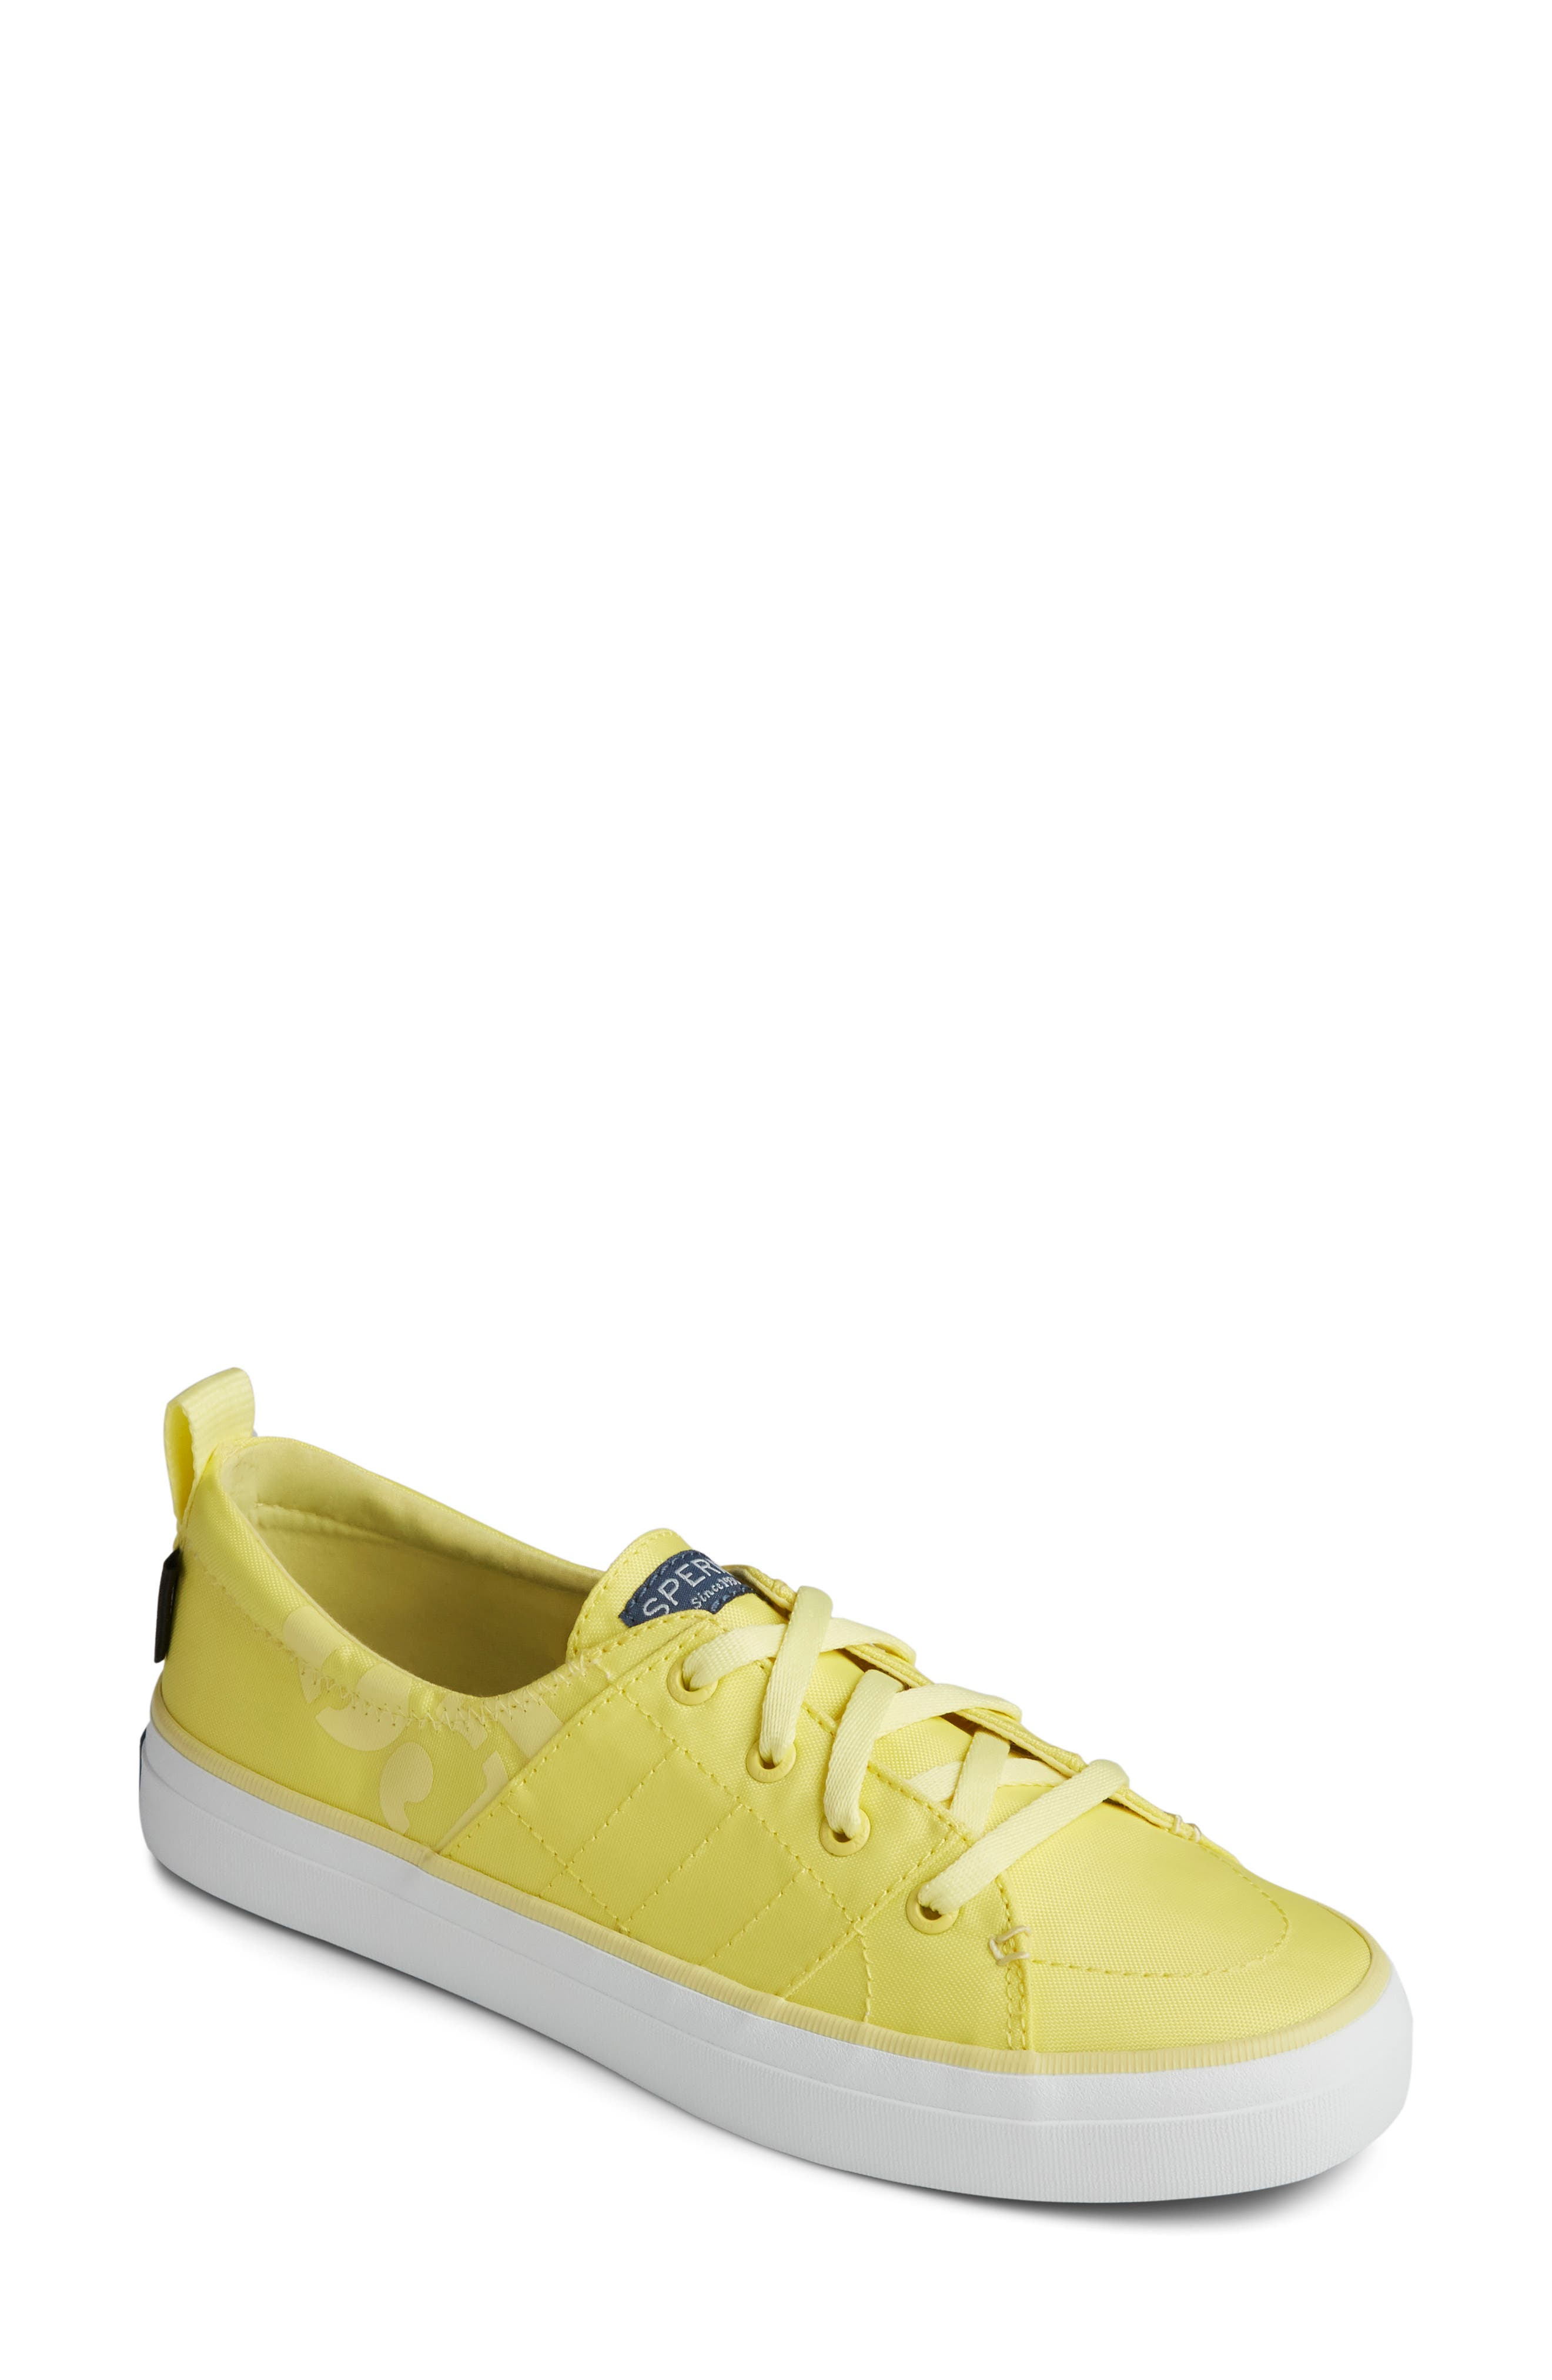 Image of Sperry Crest Vibe Bionic Sneaker